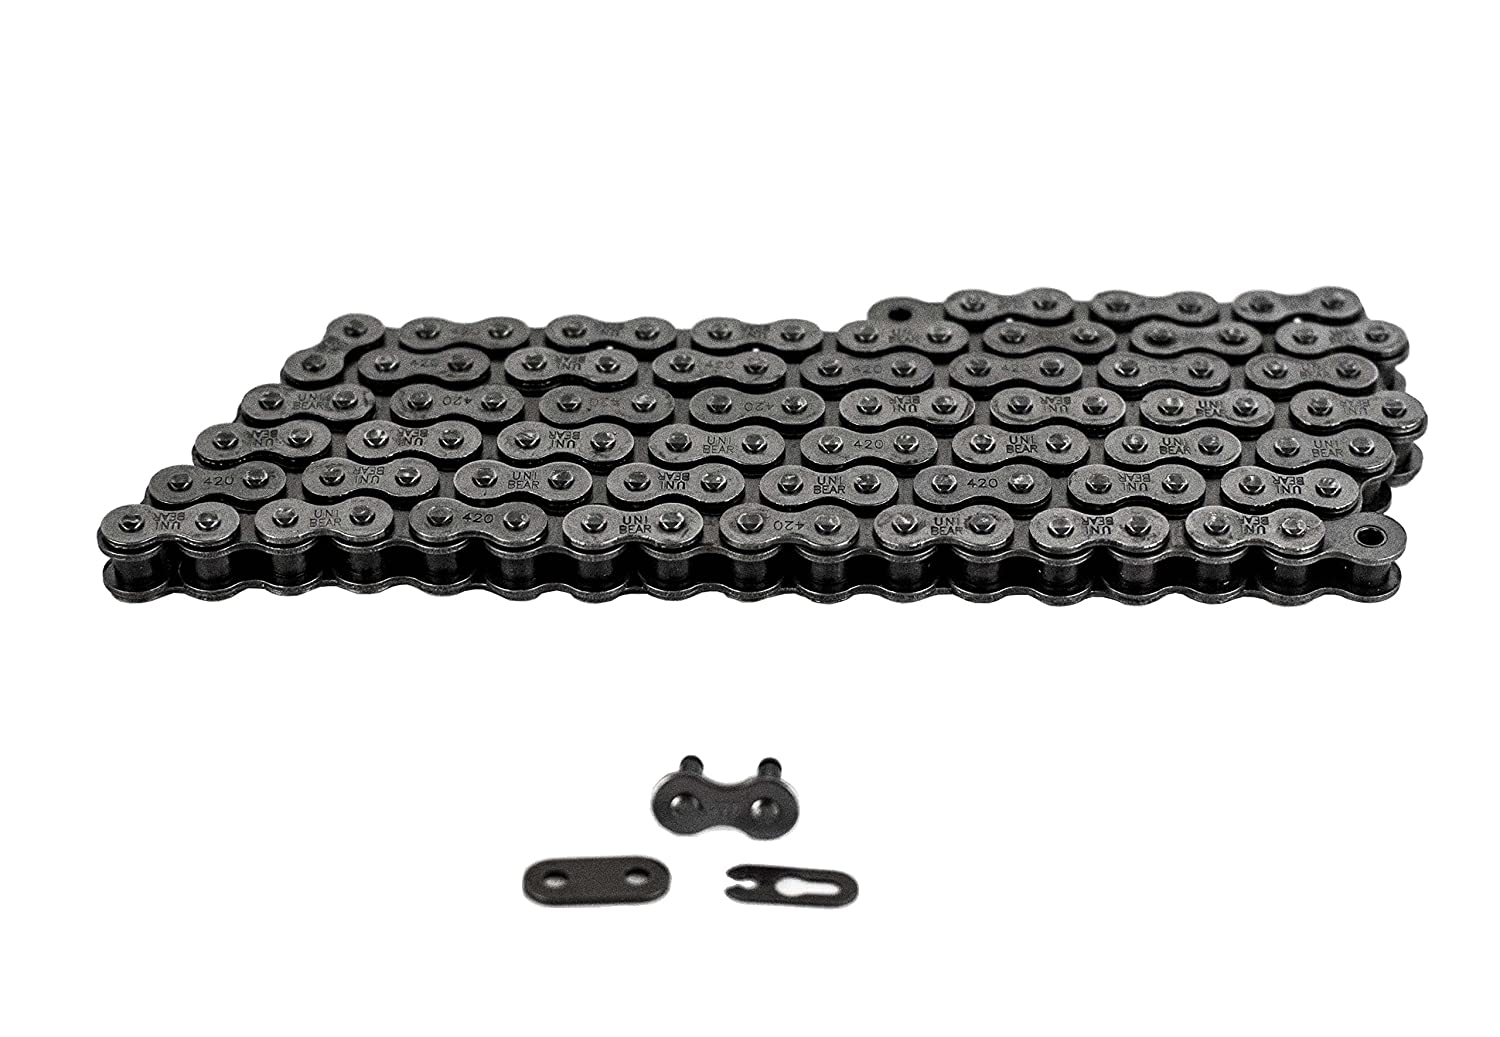 420 Motorcycle Chain 10 Feet with 1 Connecting Link